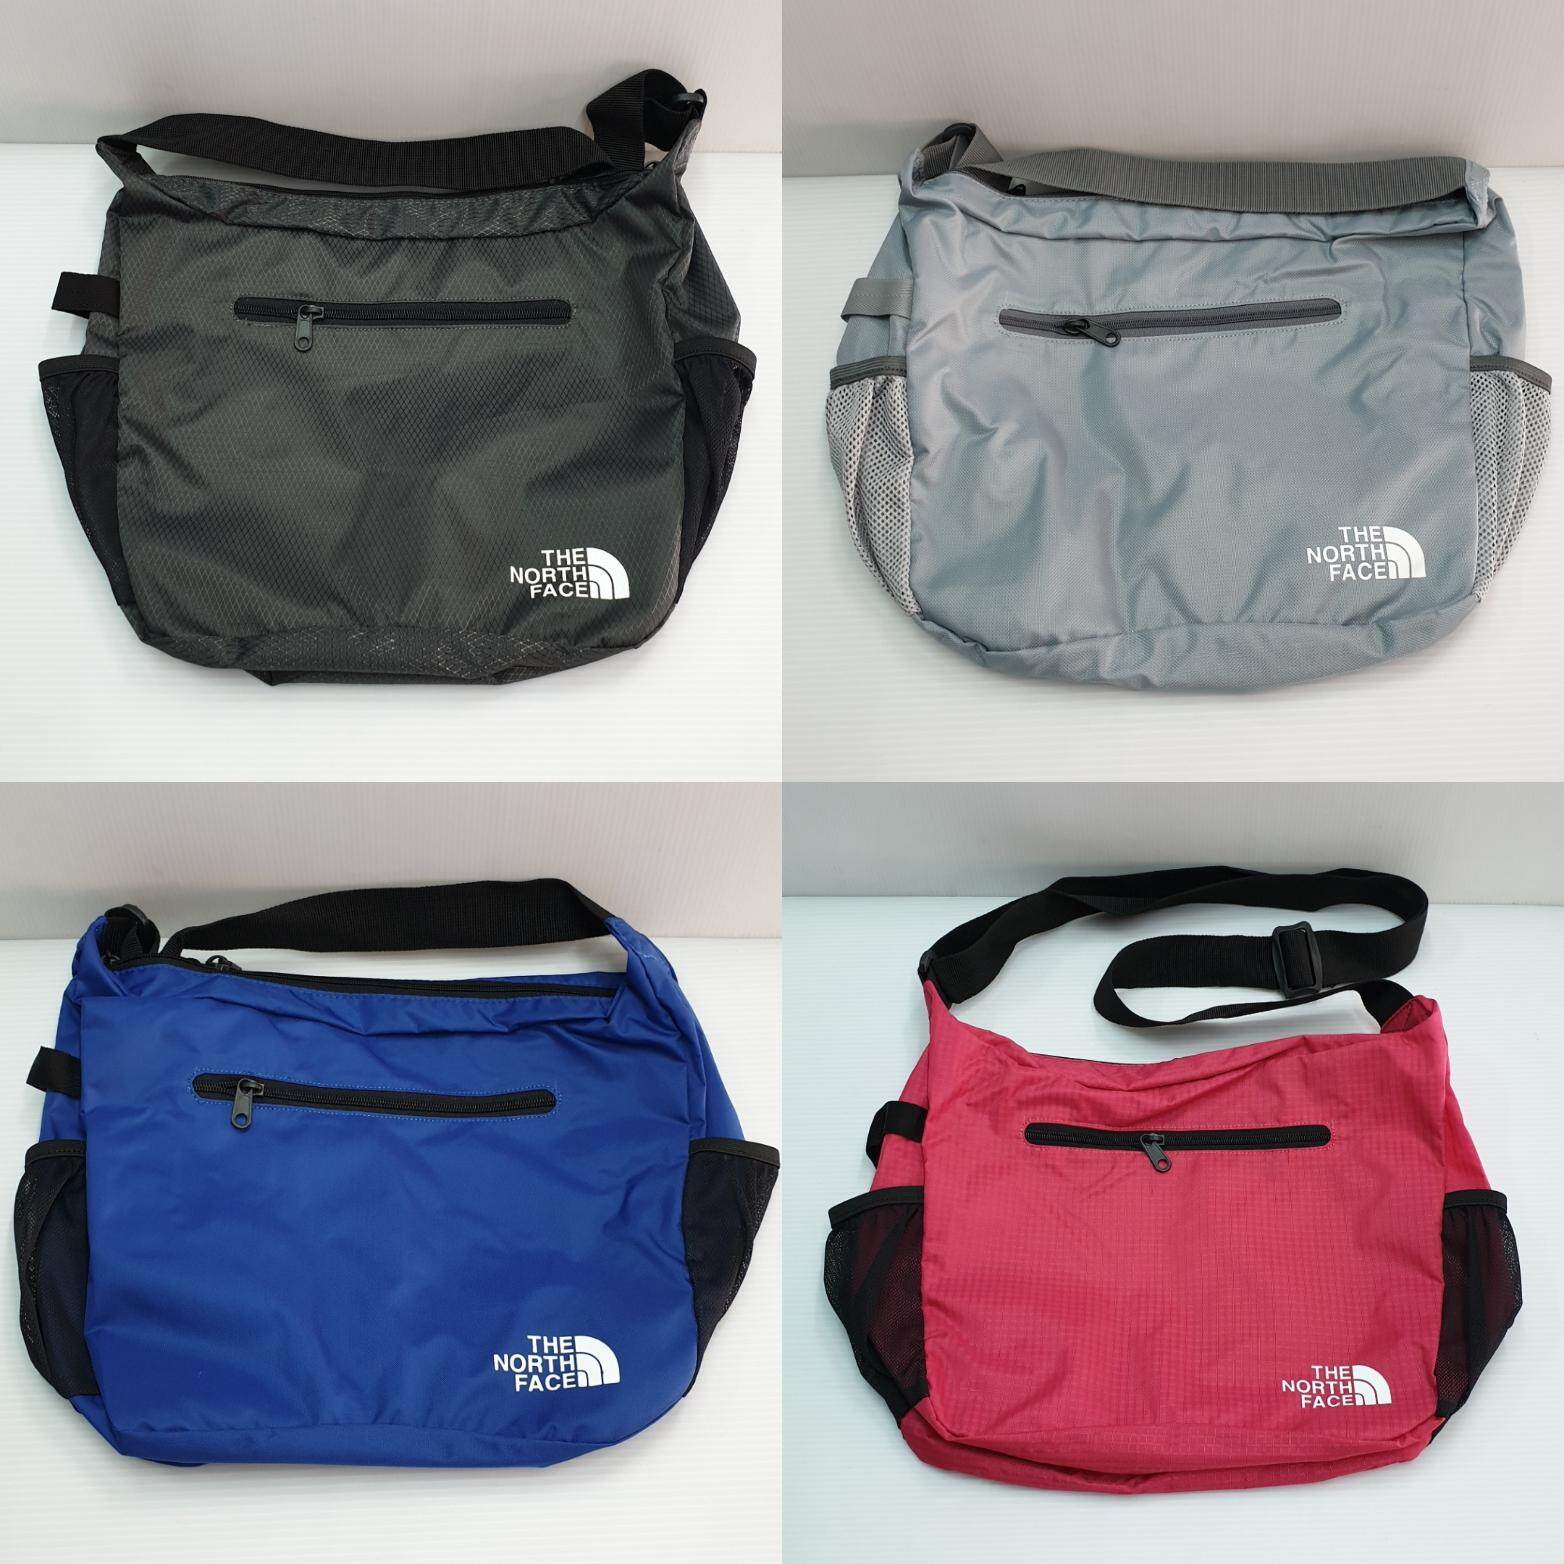 dcb430f36 The North Face Sling Bag Foldable